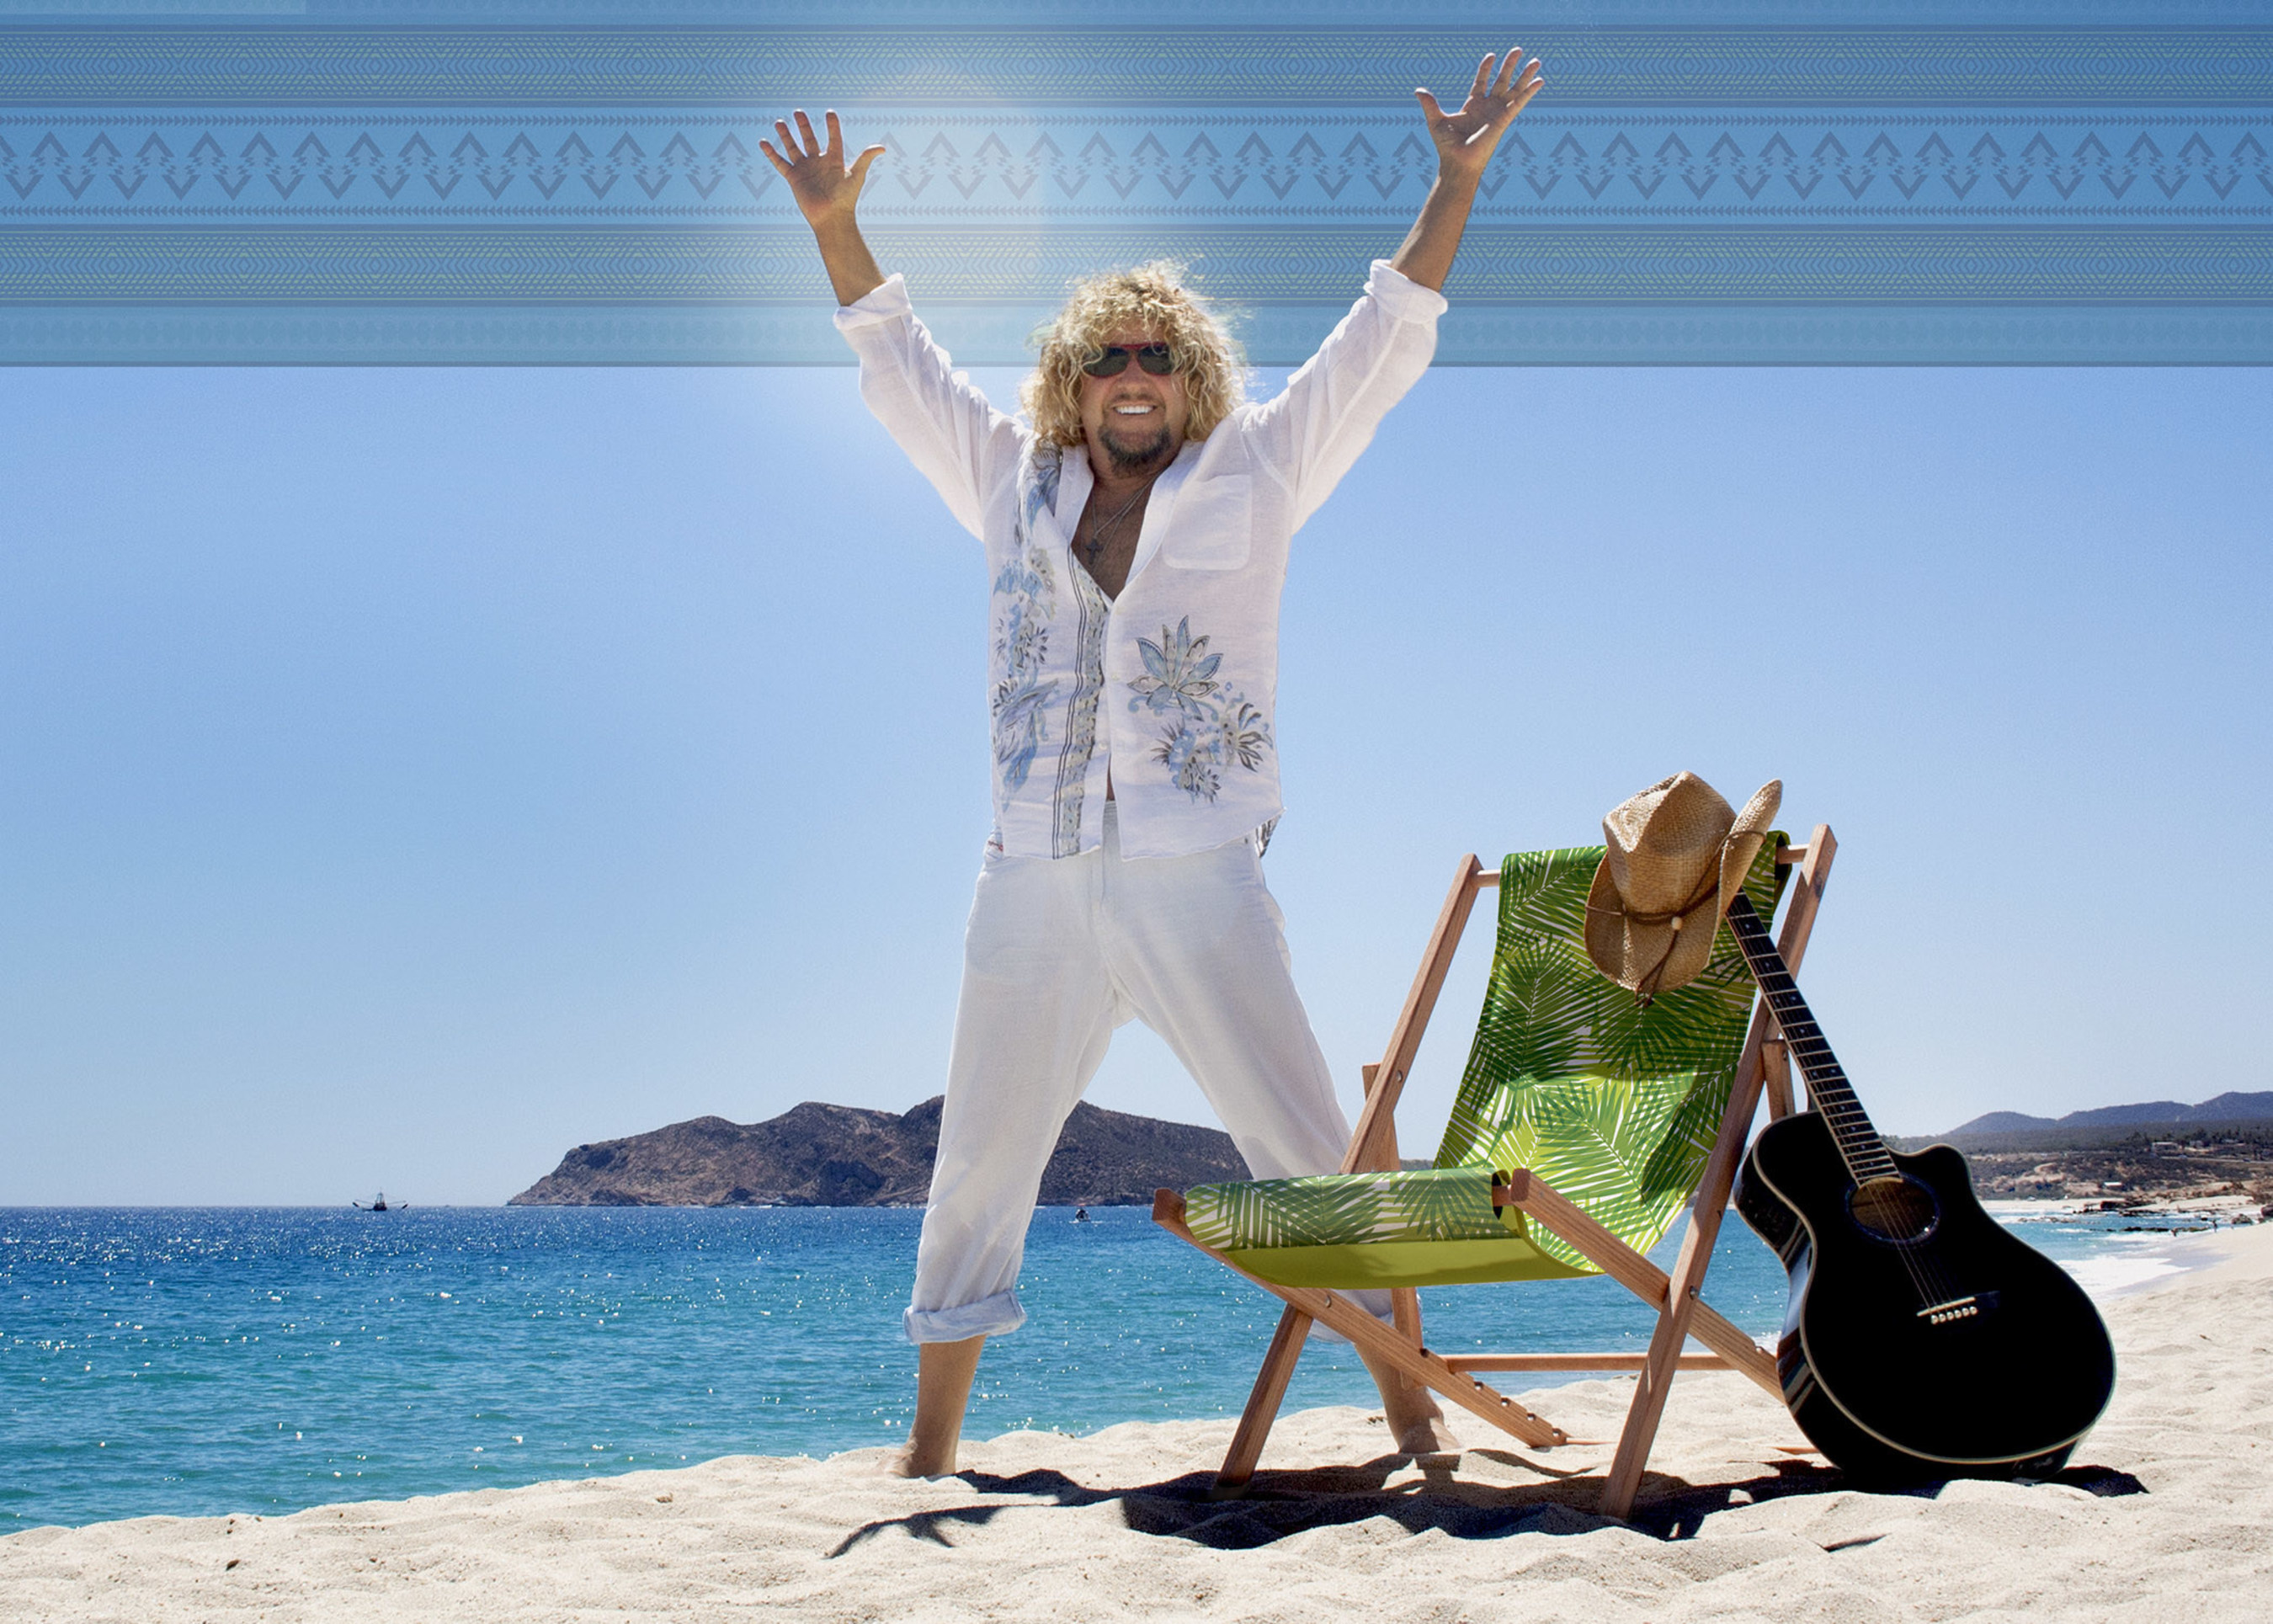 Sammy Hagar, Epic Rights and PROMINENT Brand + Talent Partner to Develop Global Brand Program for Sammy's Island